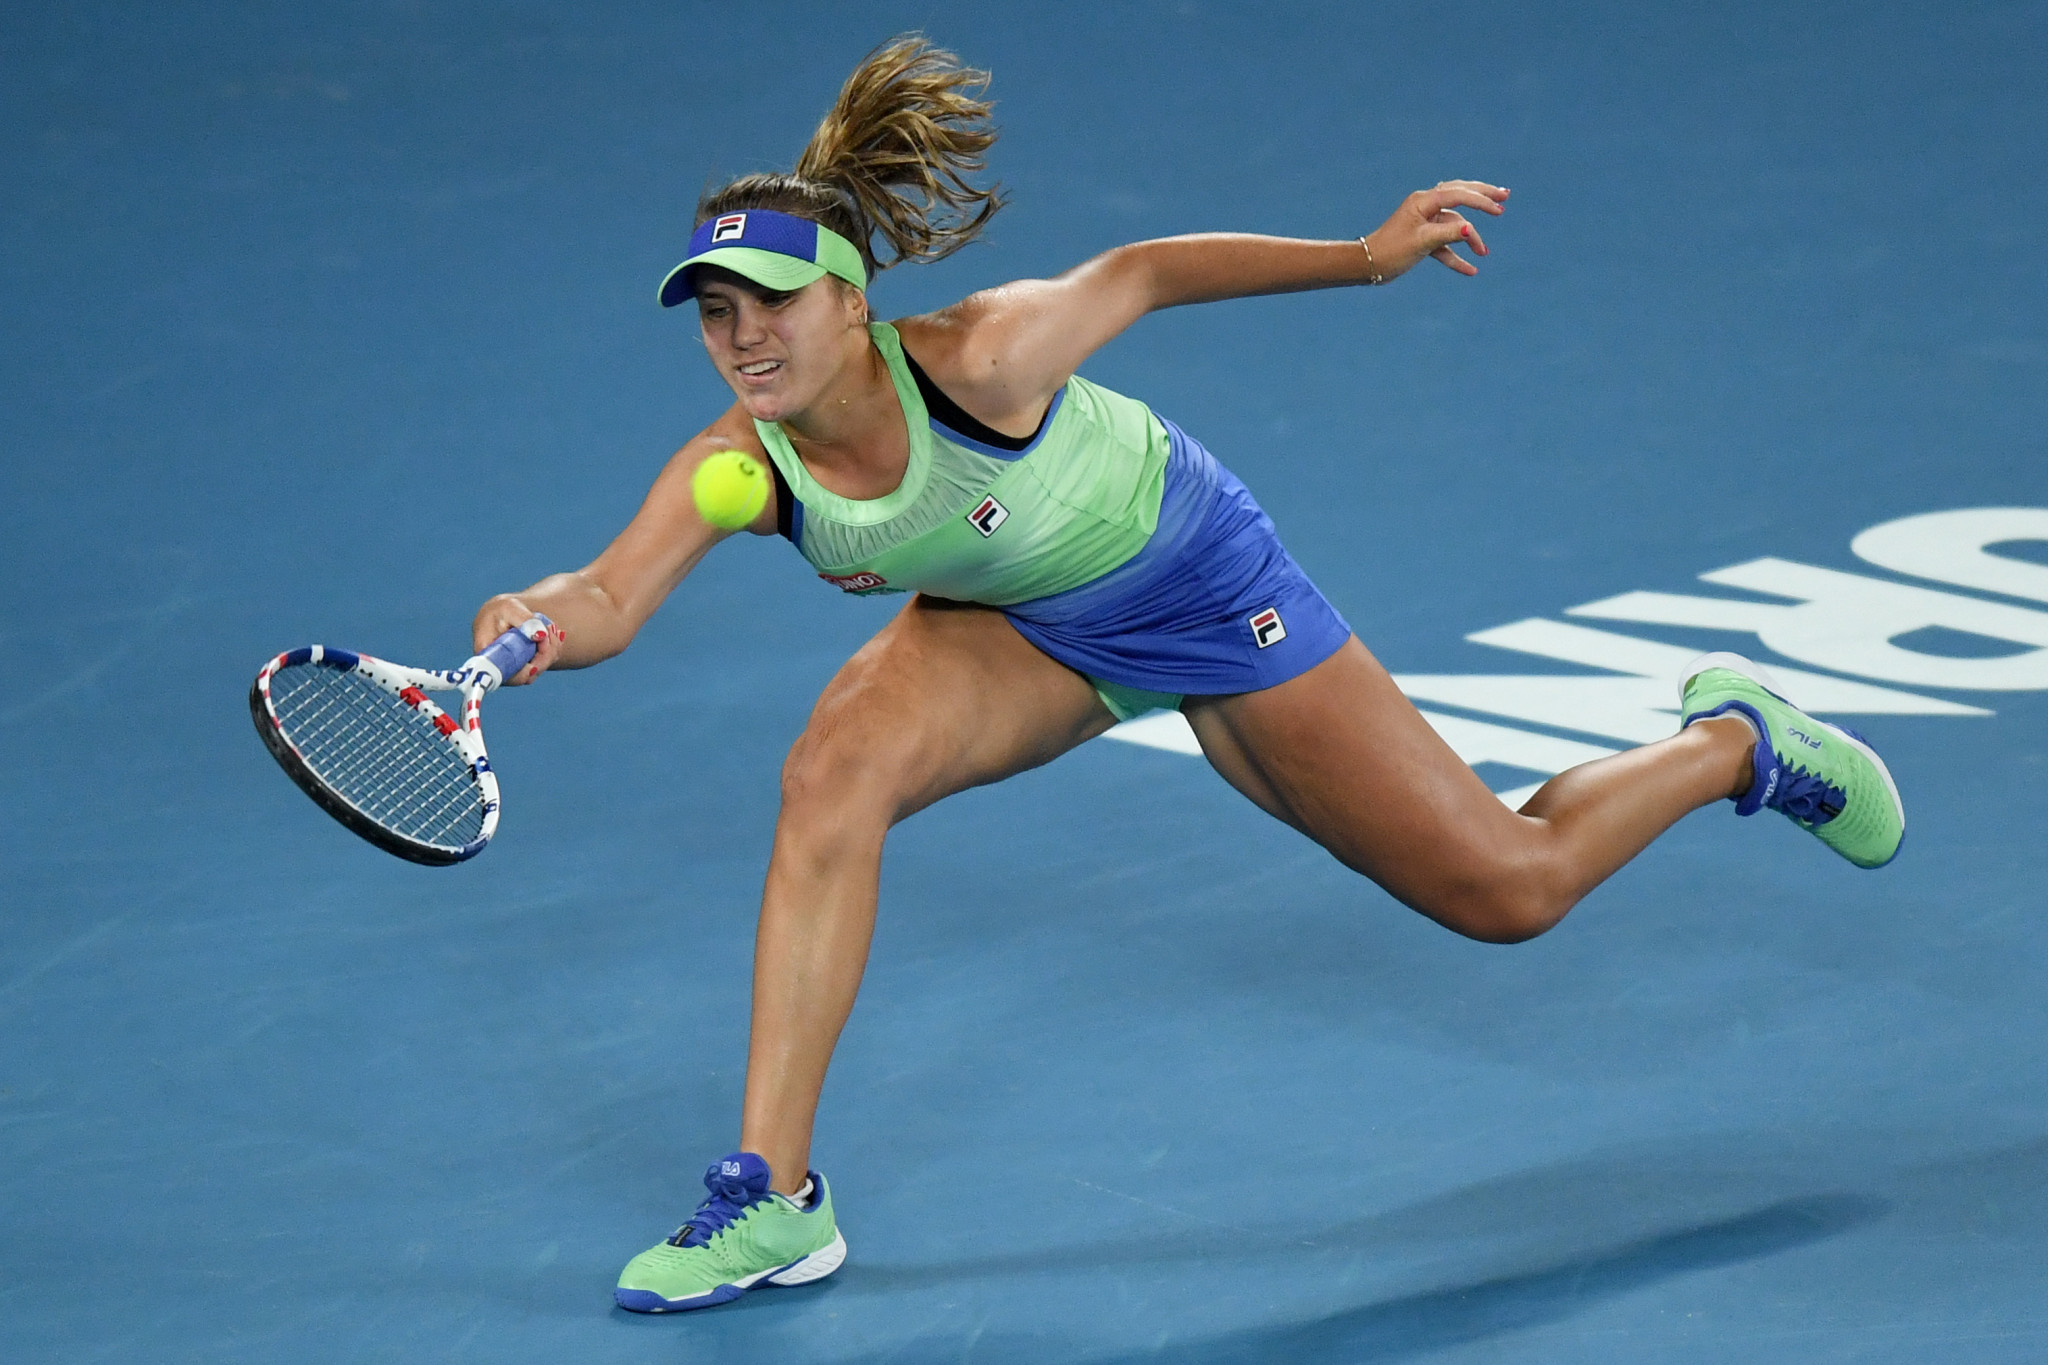 Kenin hit back in the second set to force the match into a decider ©Getty Images